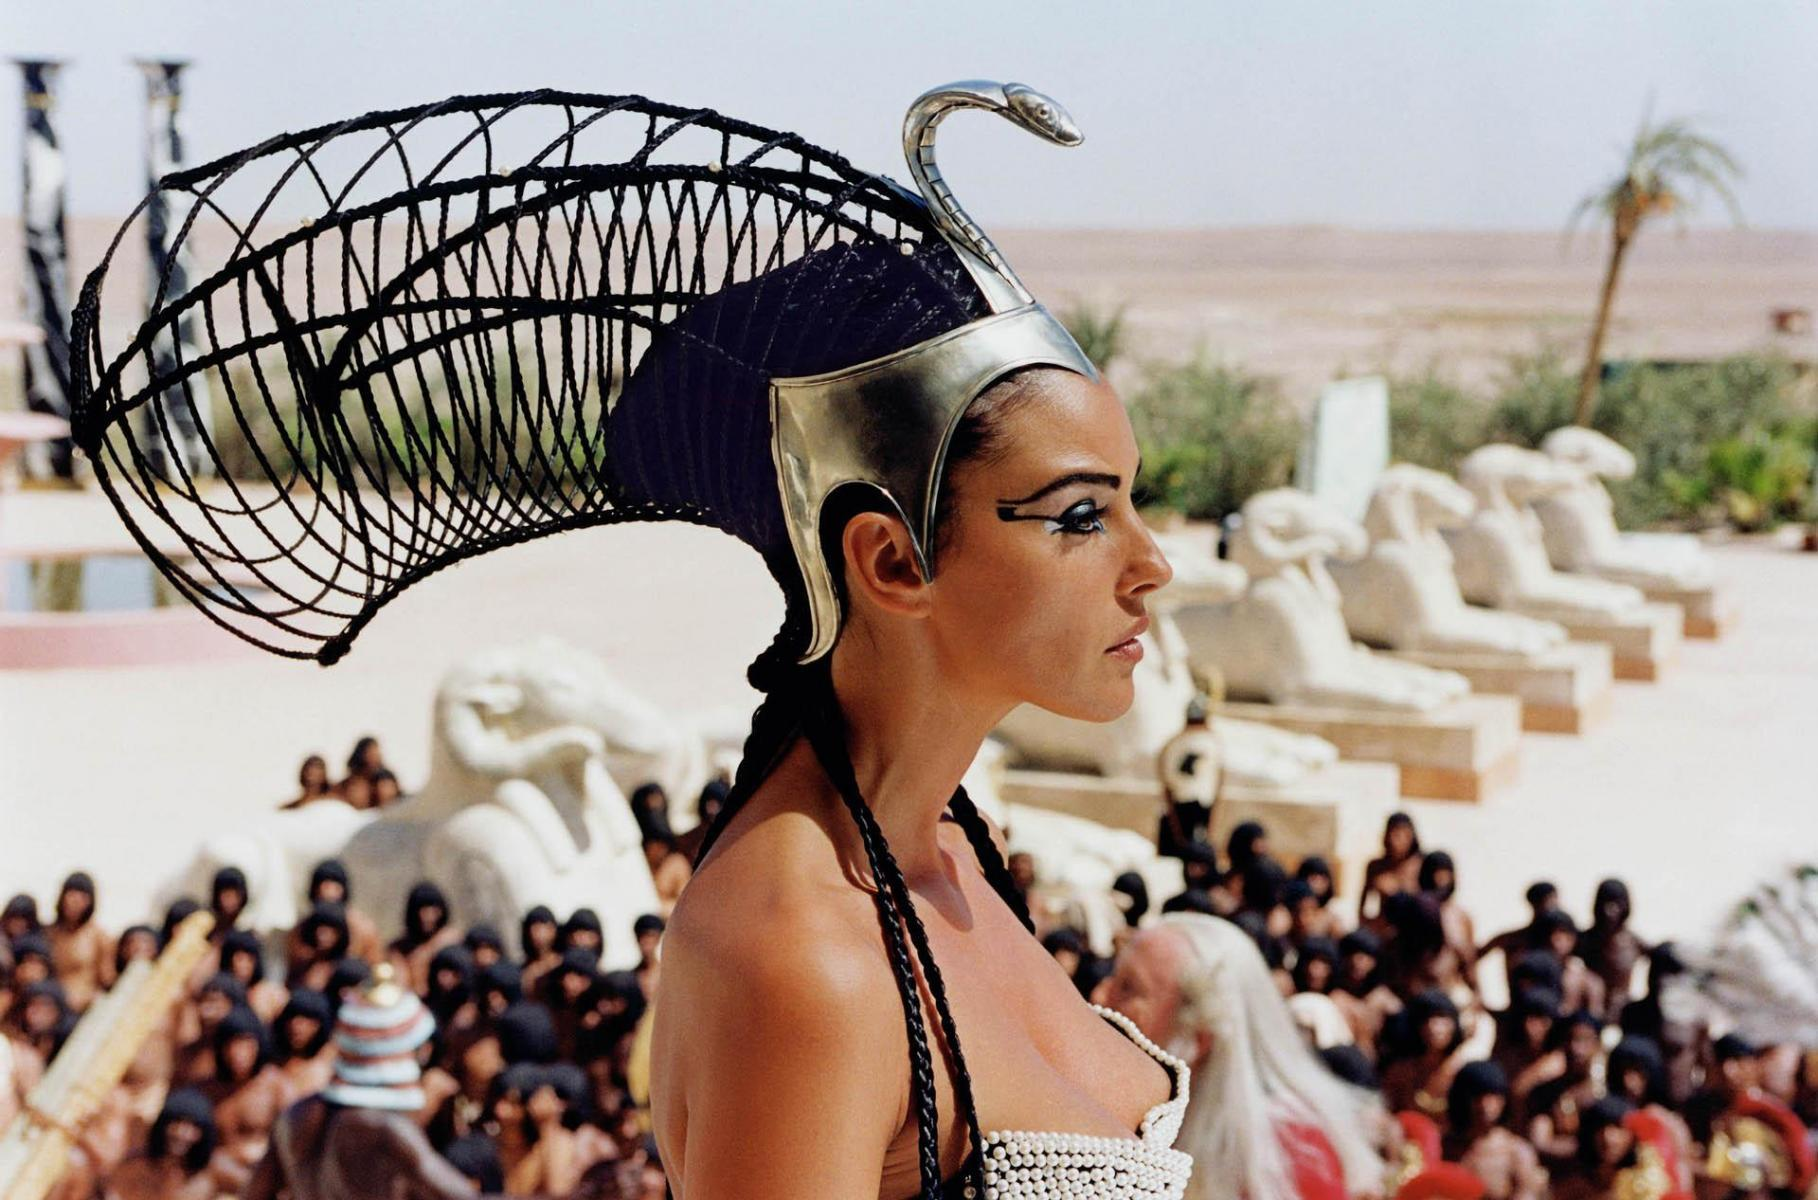 Image gallery for Asterix & Obelix: Mission Cleopatra - FilmAffinity